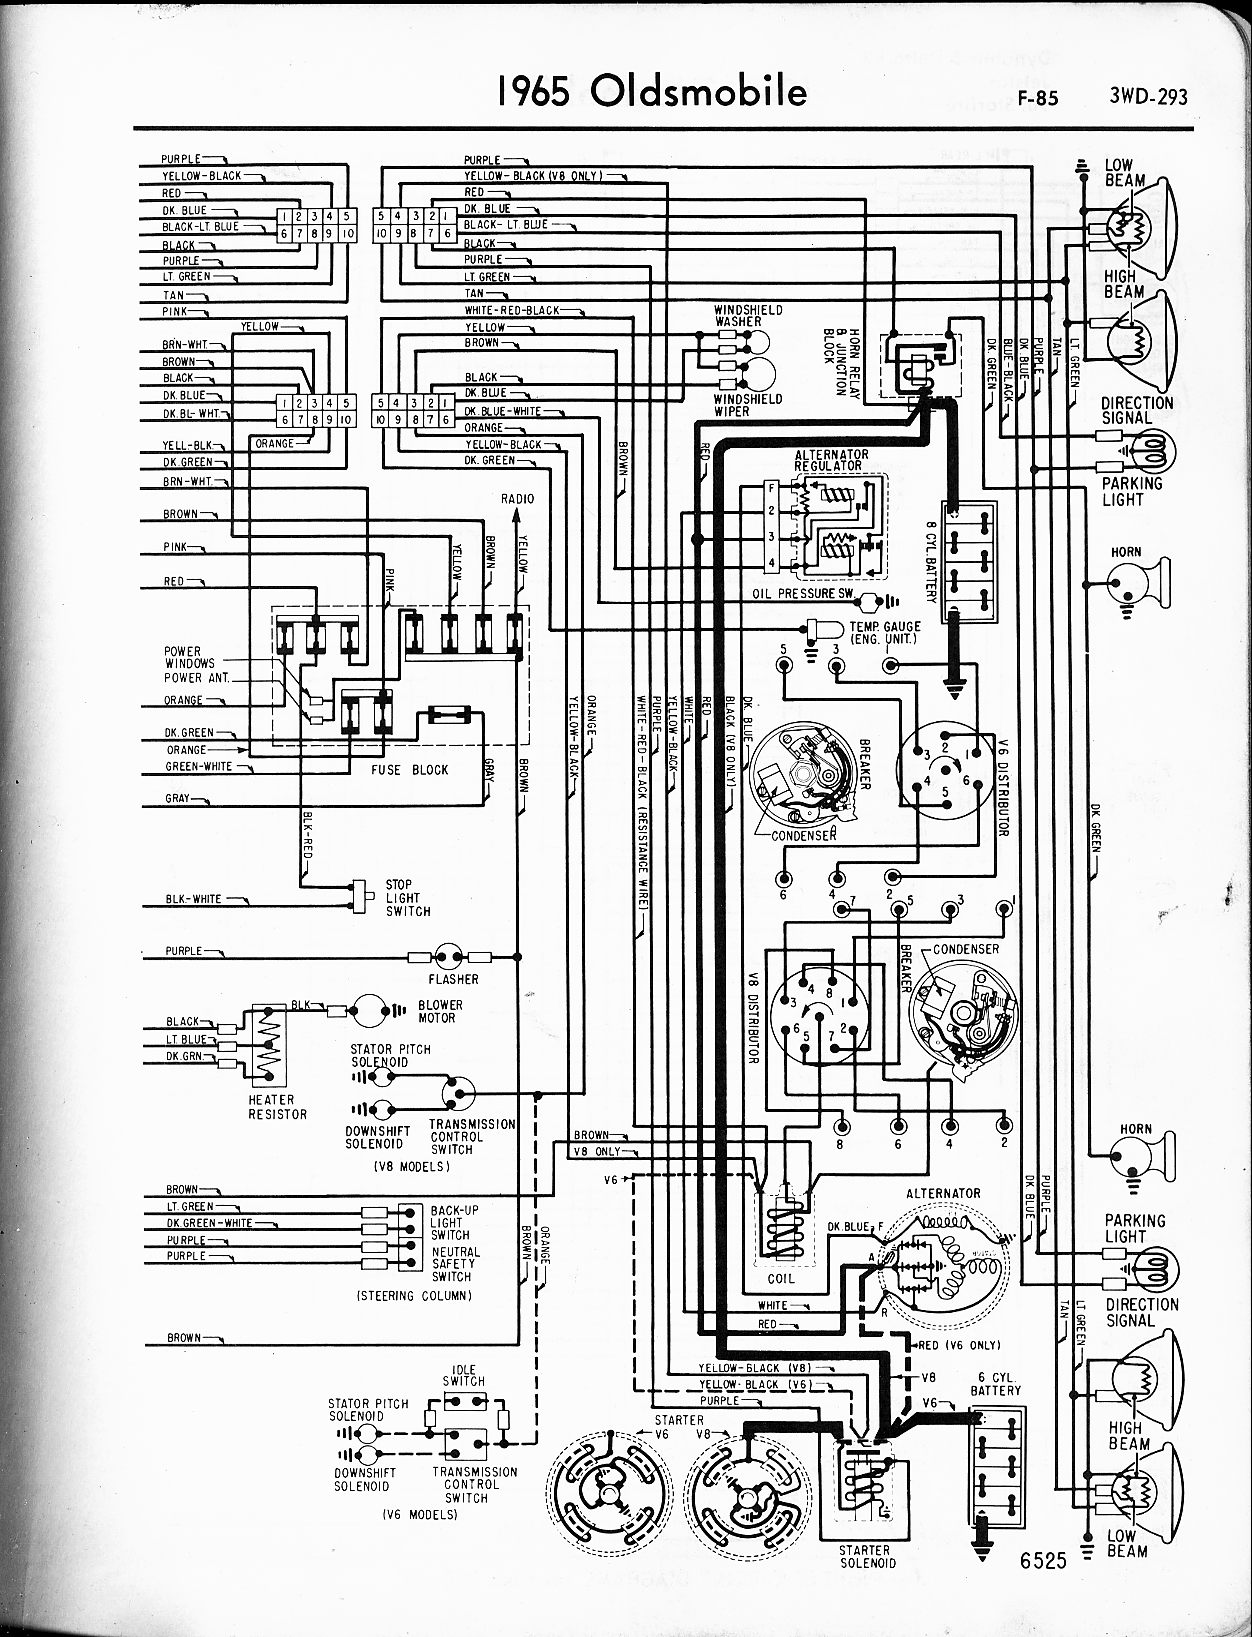 MWire5765 293 oldsmobile wiring diagrams the old car manual project Basic Turn Signal Wiring Diagram at edmiracle.co